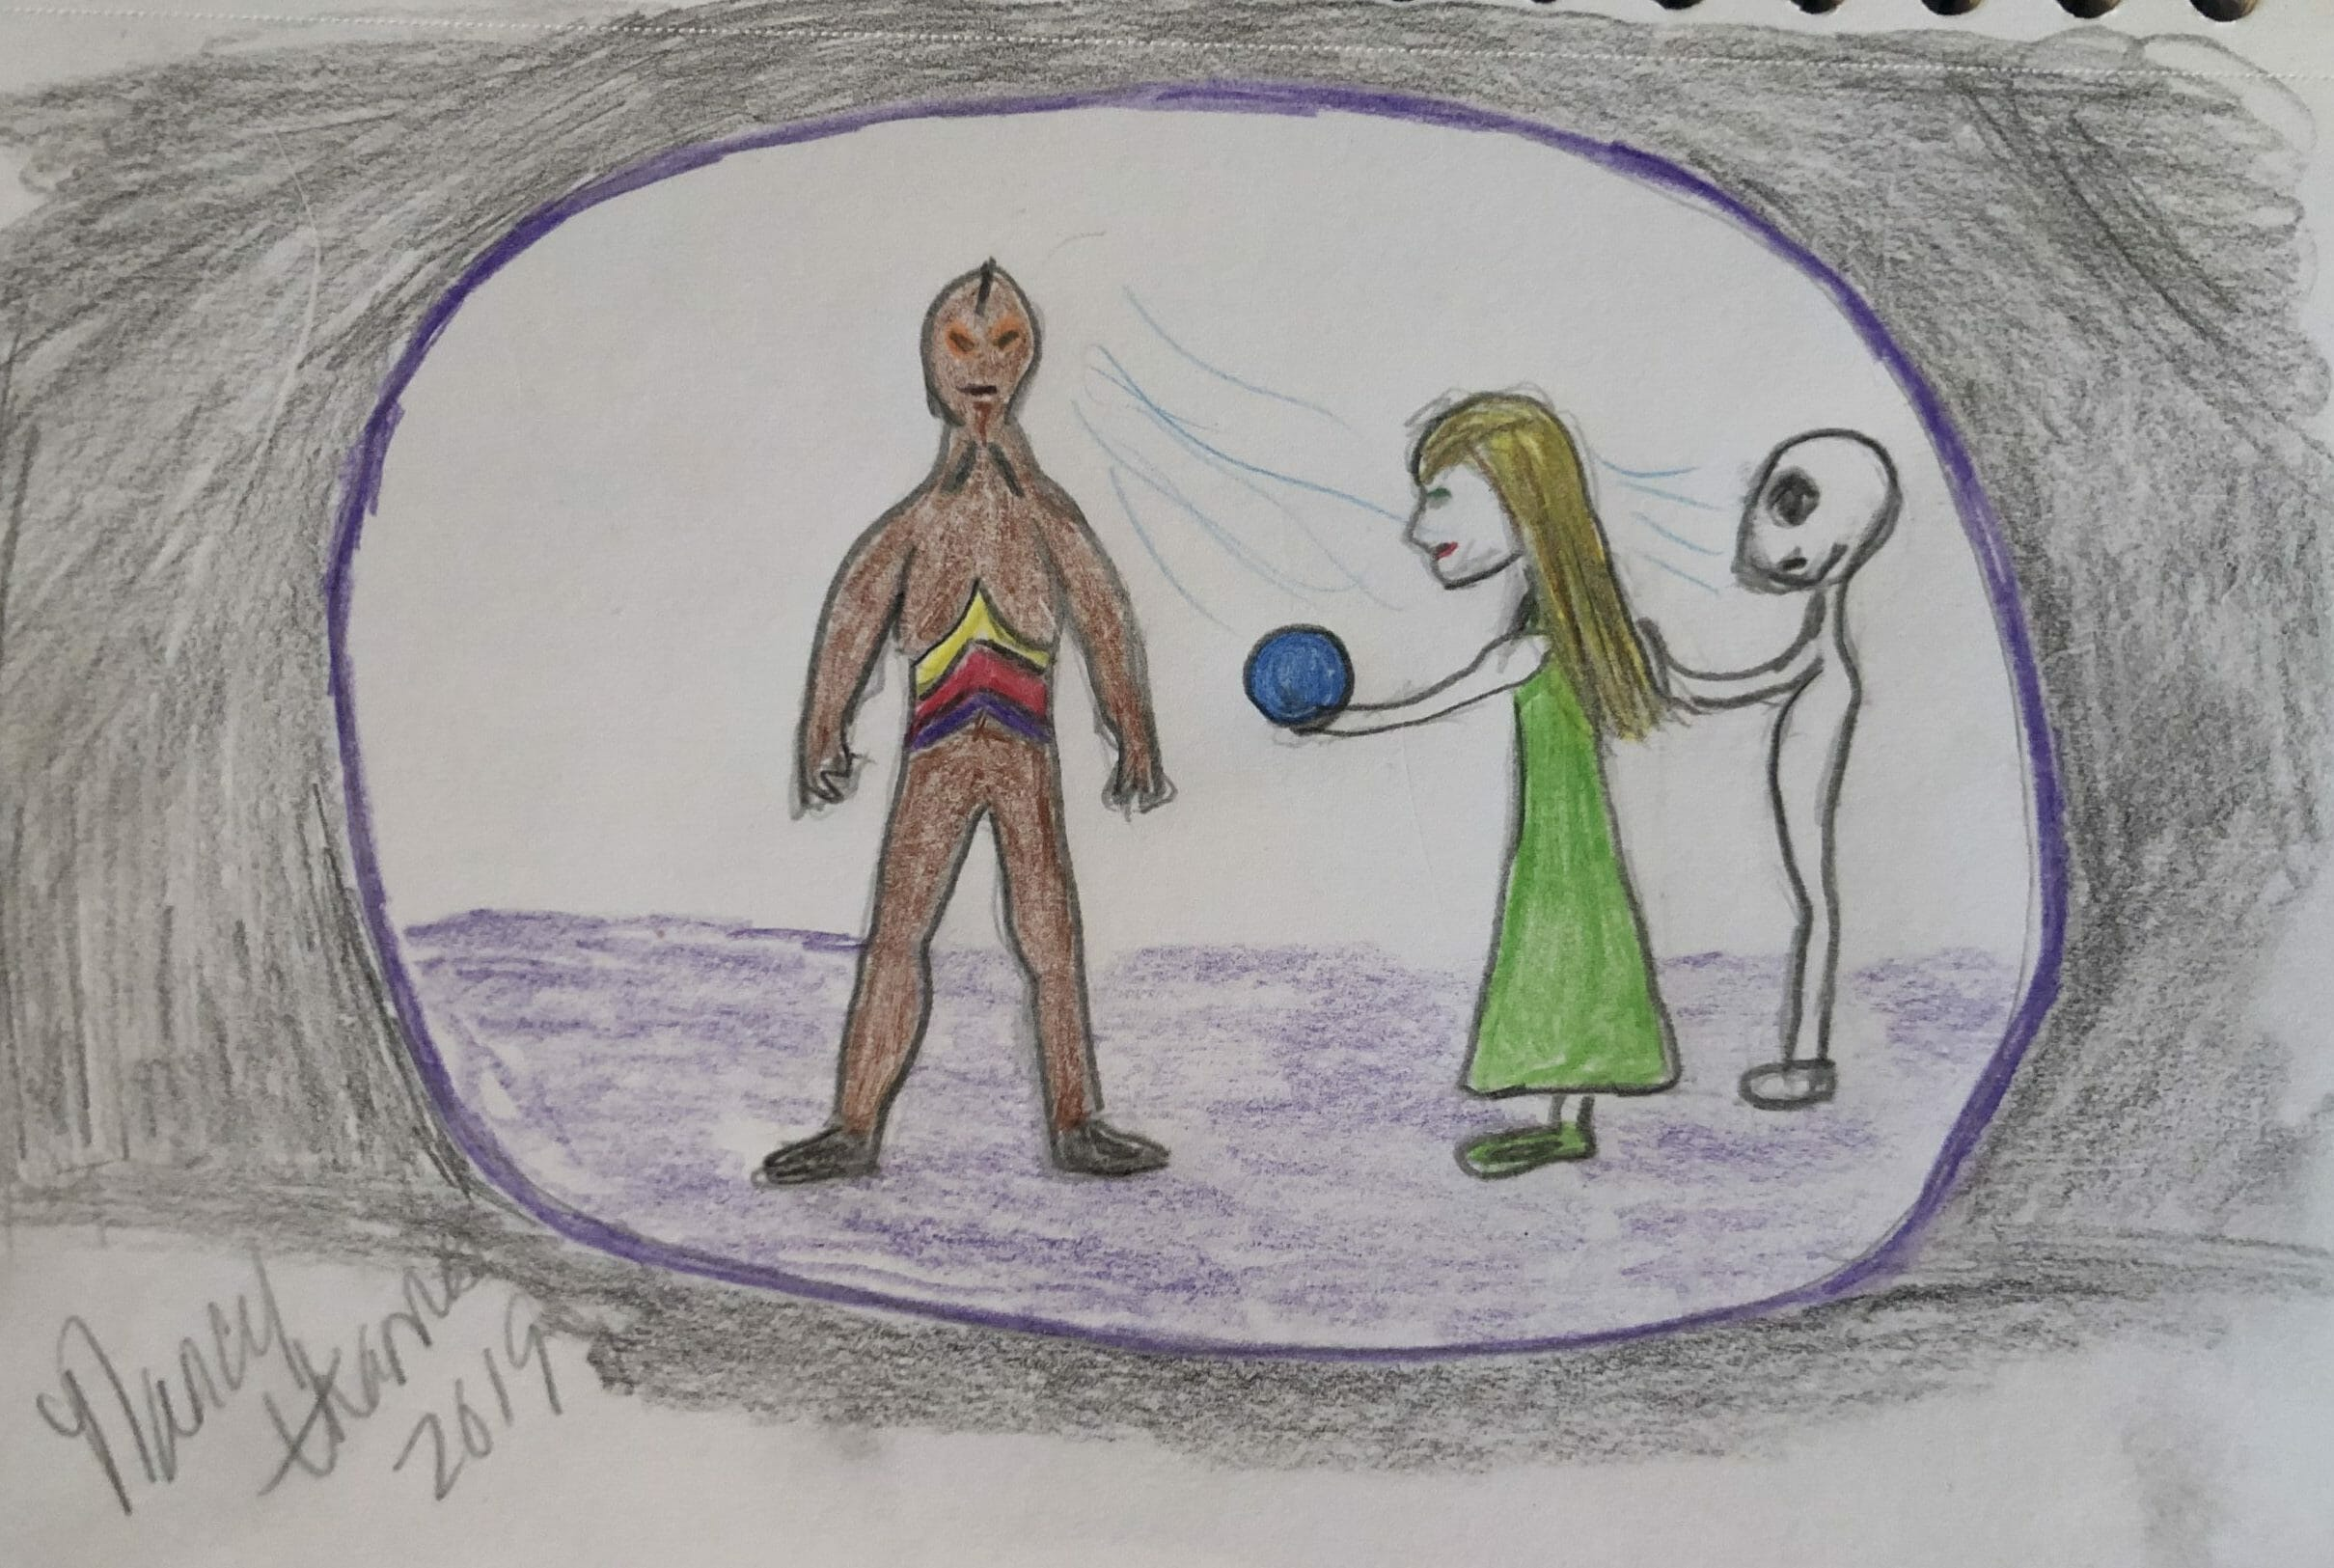 Presenting my blue orb to reptilian humanoid